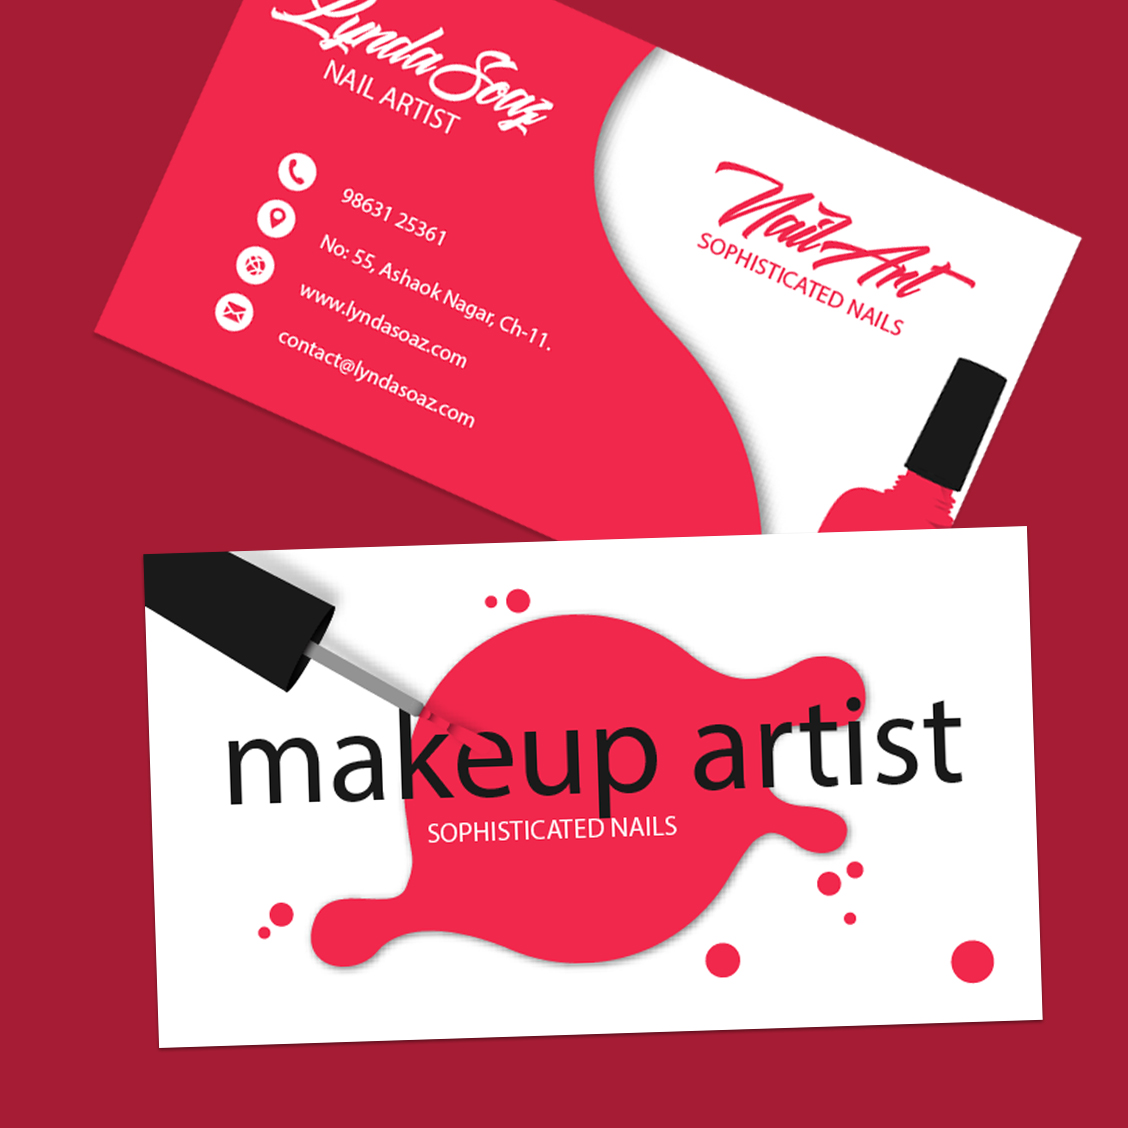 Makeup artist business cards inkmonk makeup artist business cards colourmoves